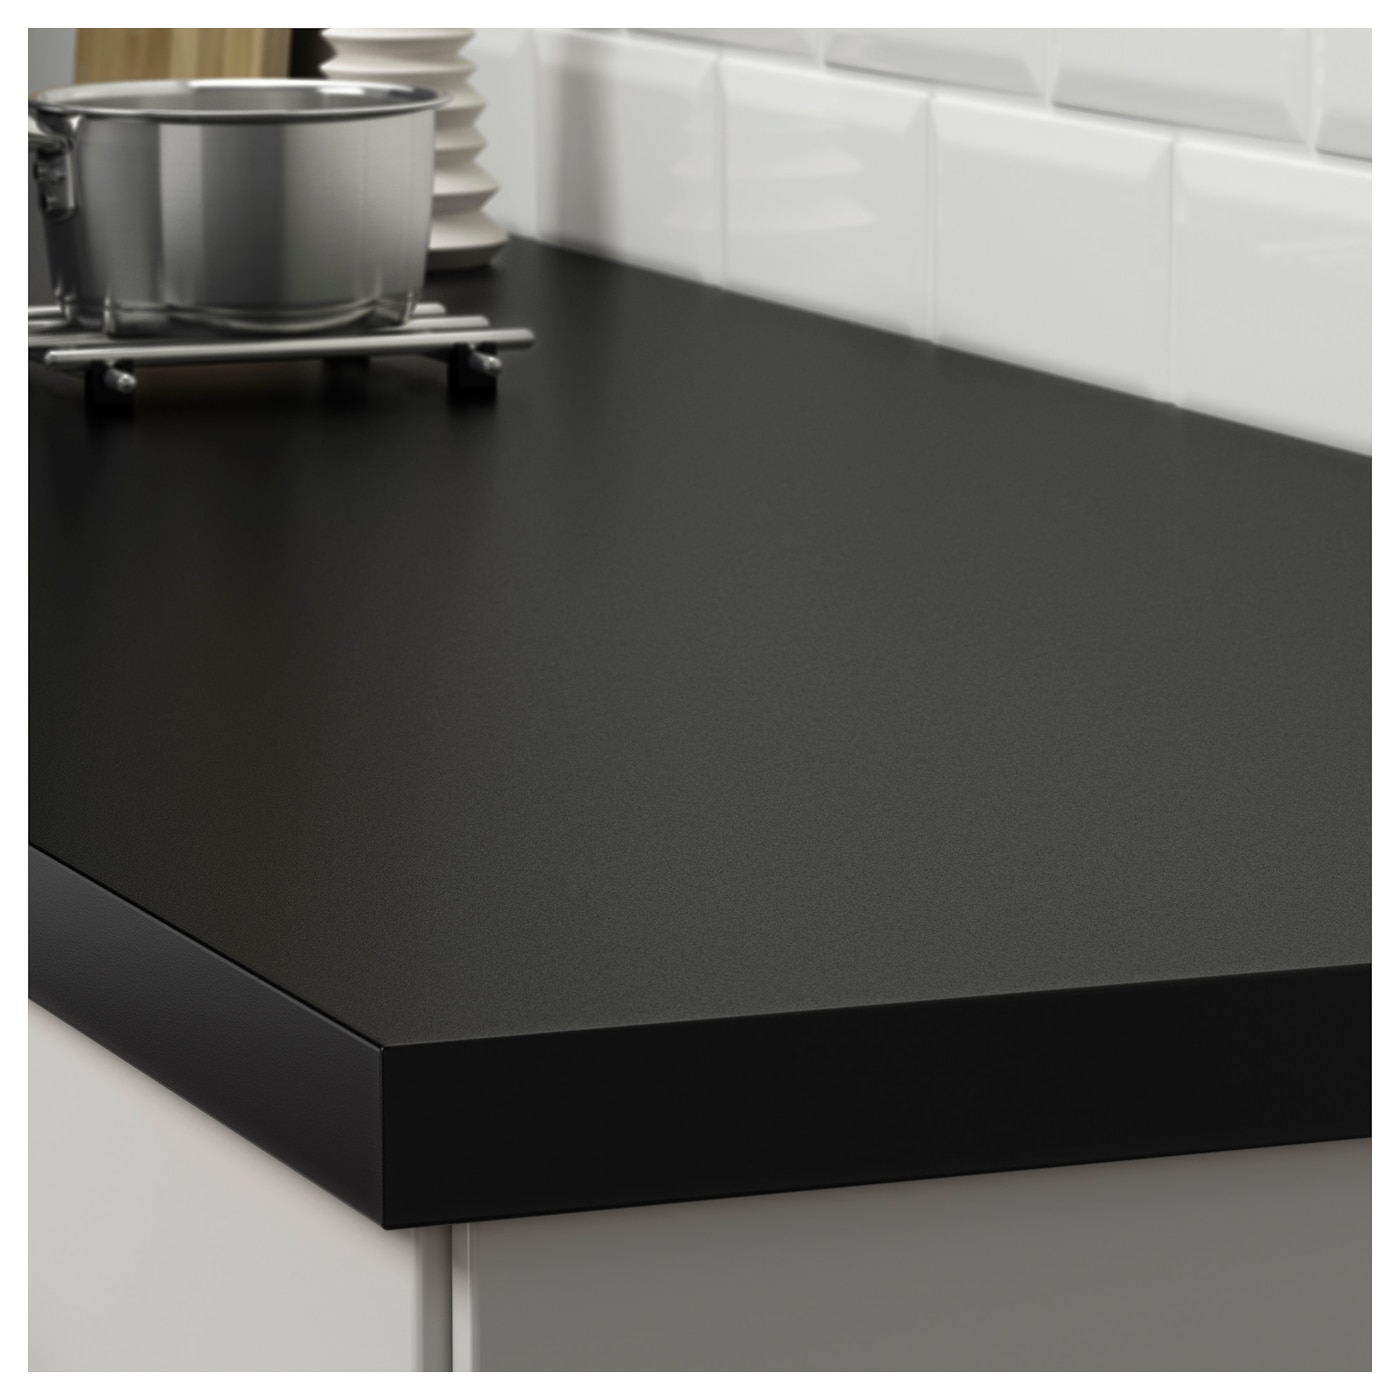 IKEA SÄLJAN custom made worktop 25 year guarantee. Read about the terms in the guarantee brochure.